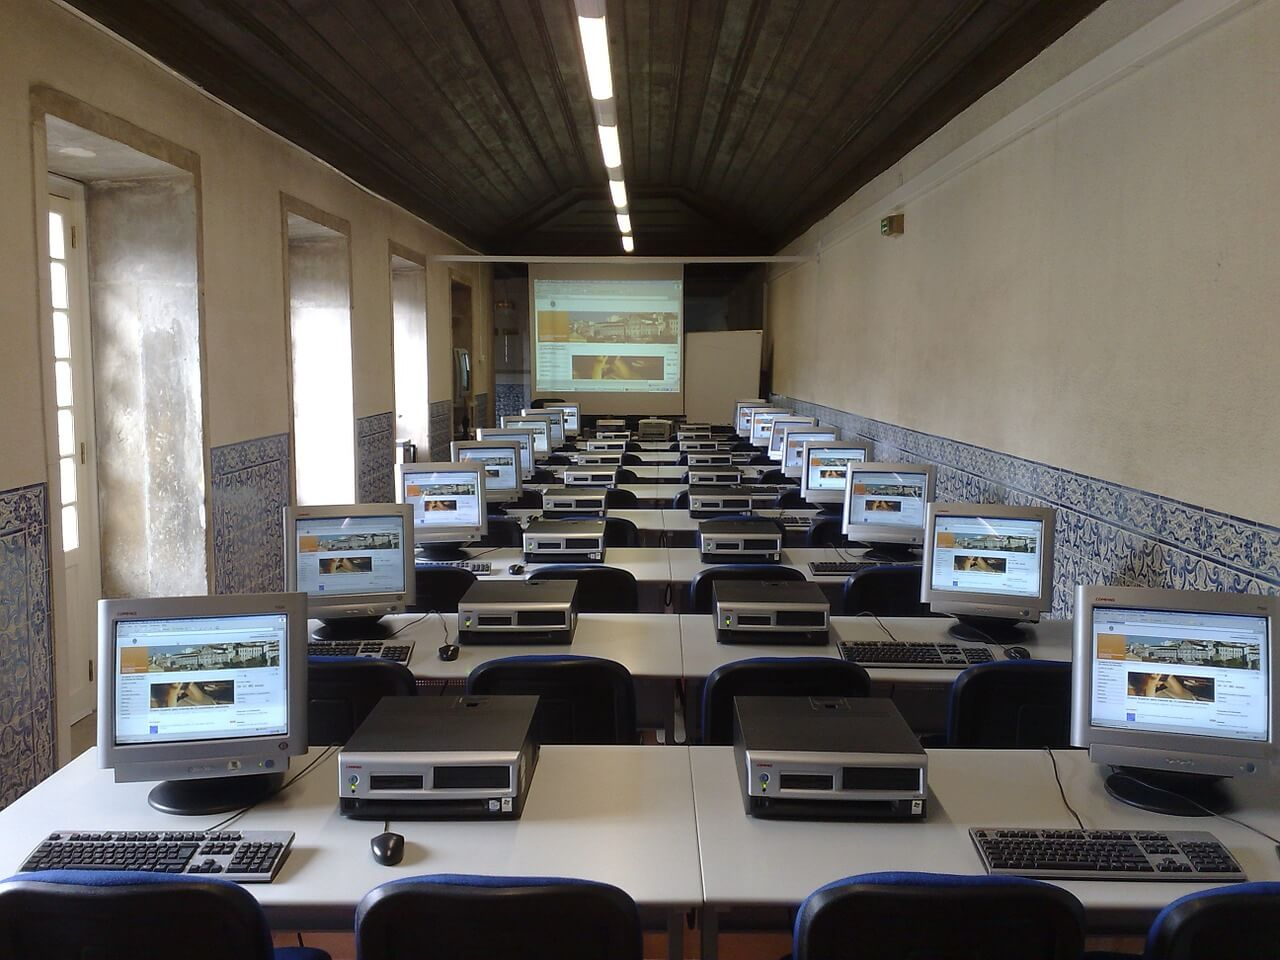 Photo of a classroom filled with computers with a projector screen in the front, which is used by a coding bootcamp